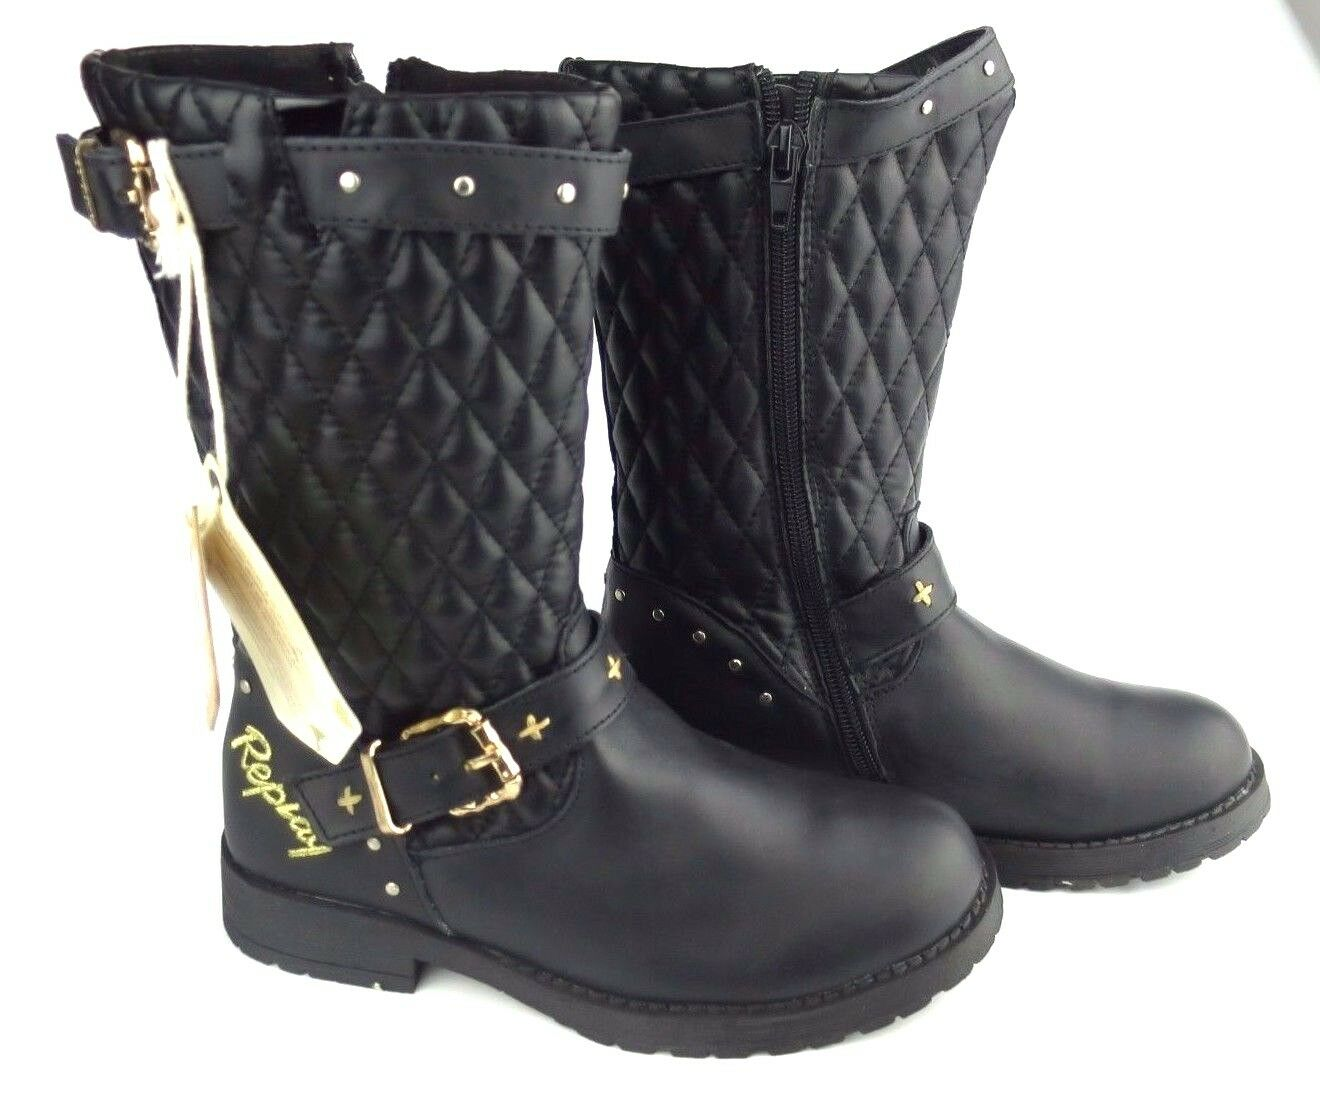 Replay Leicester Chaussures Femmes Cuir Chaussures Leicester Fille Bottes Woman Boots Noir 7ba41b